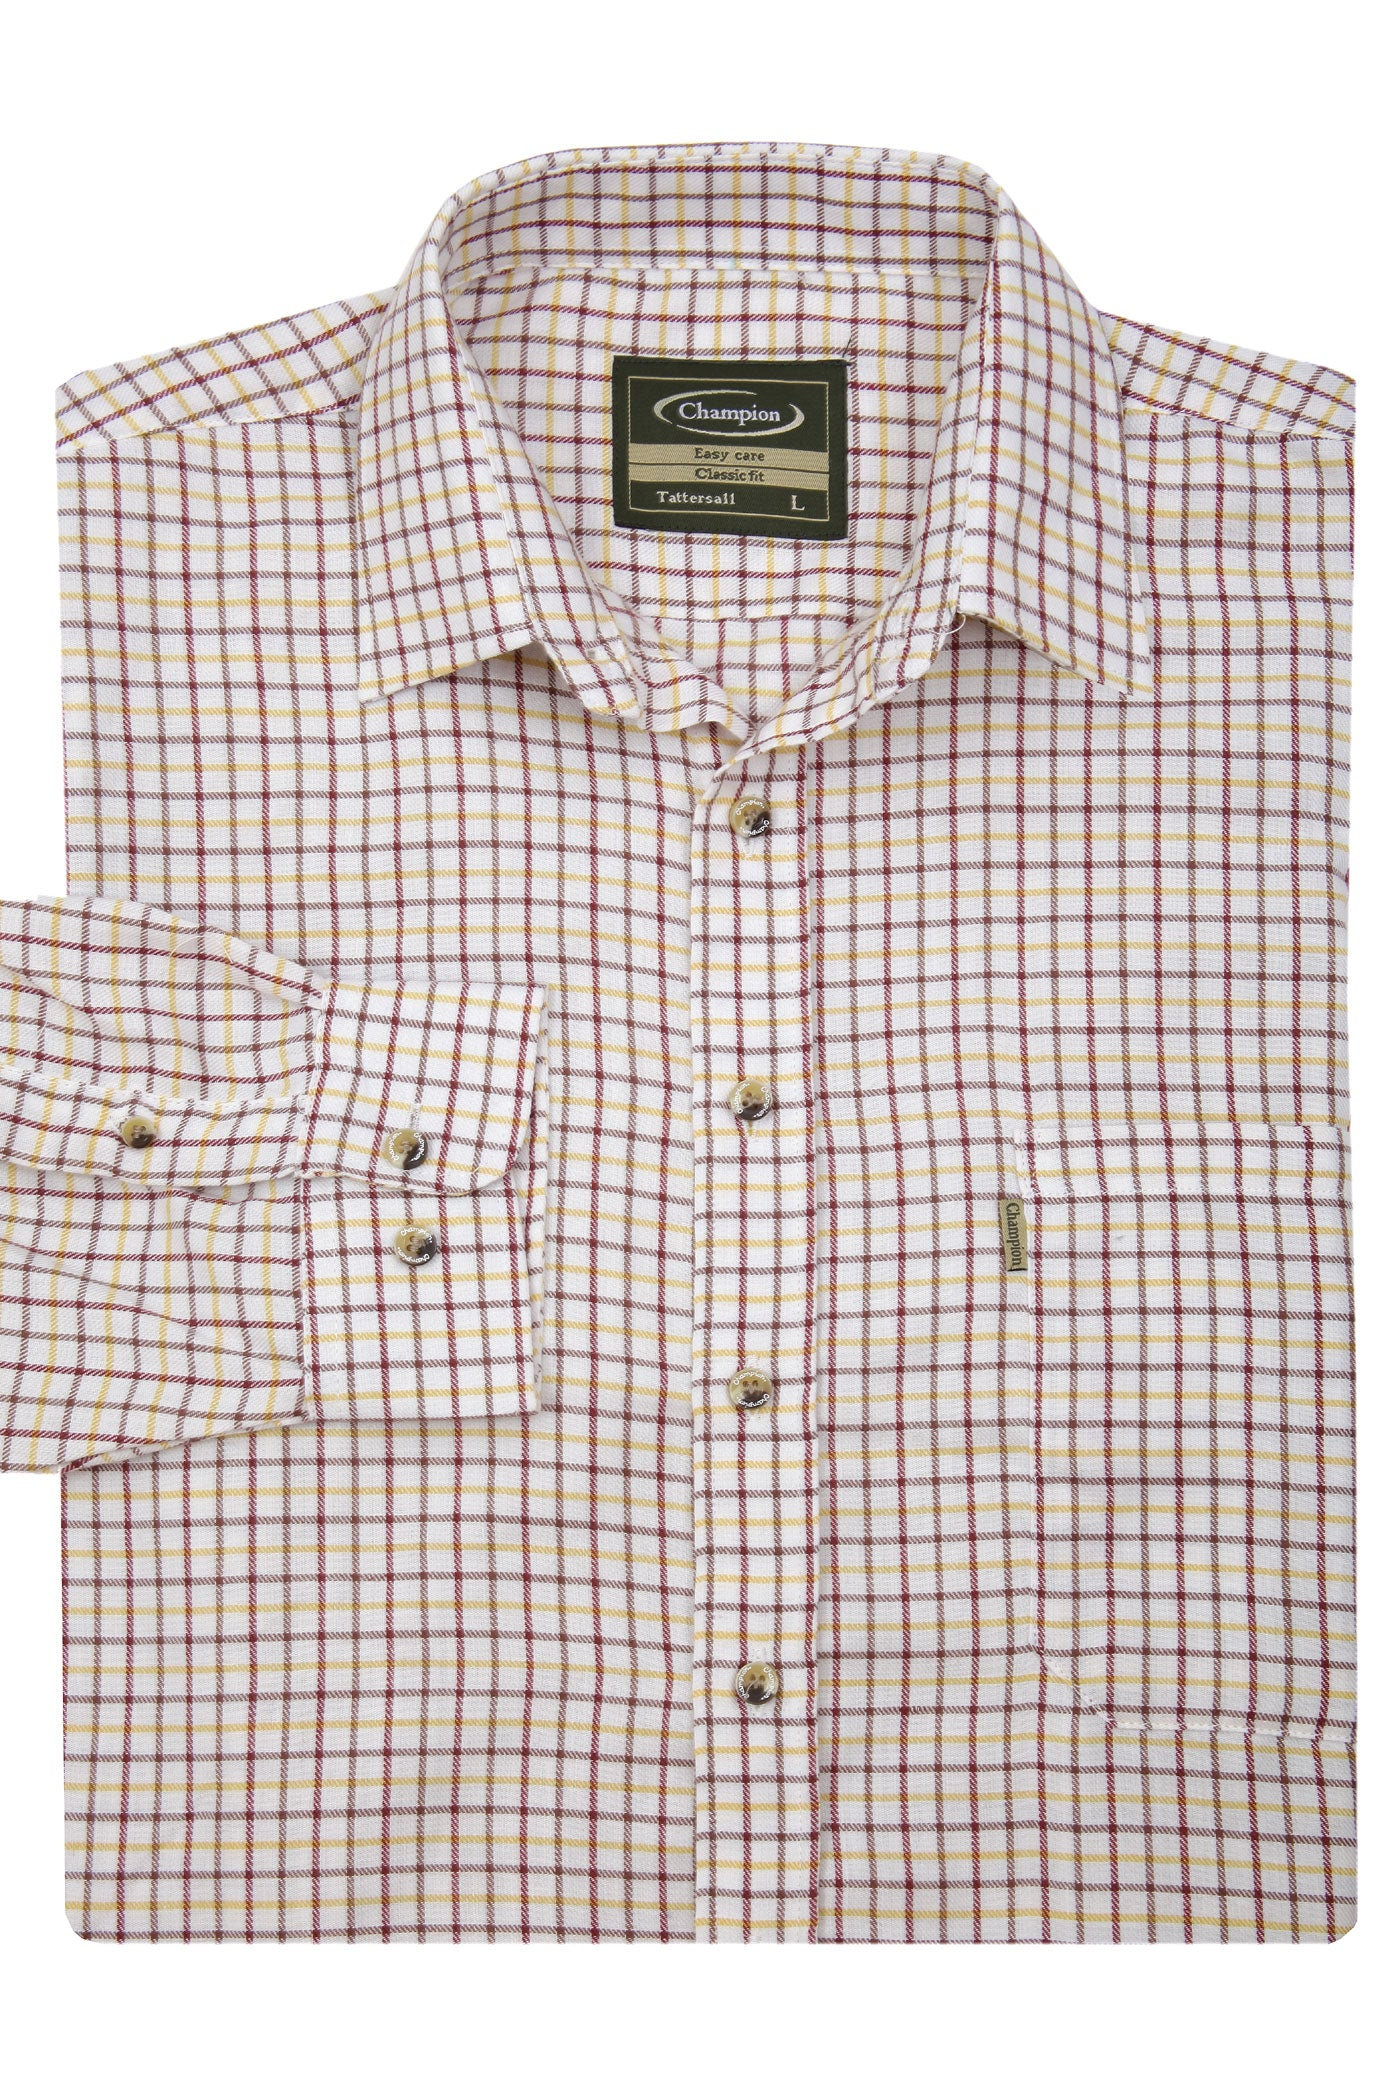 red check folded Champion Long Sleeved Tattersall  Country Check Shirt.